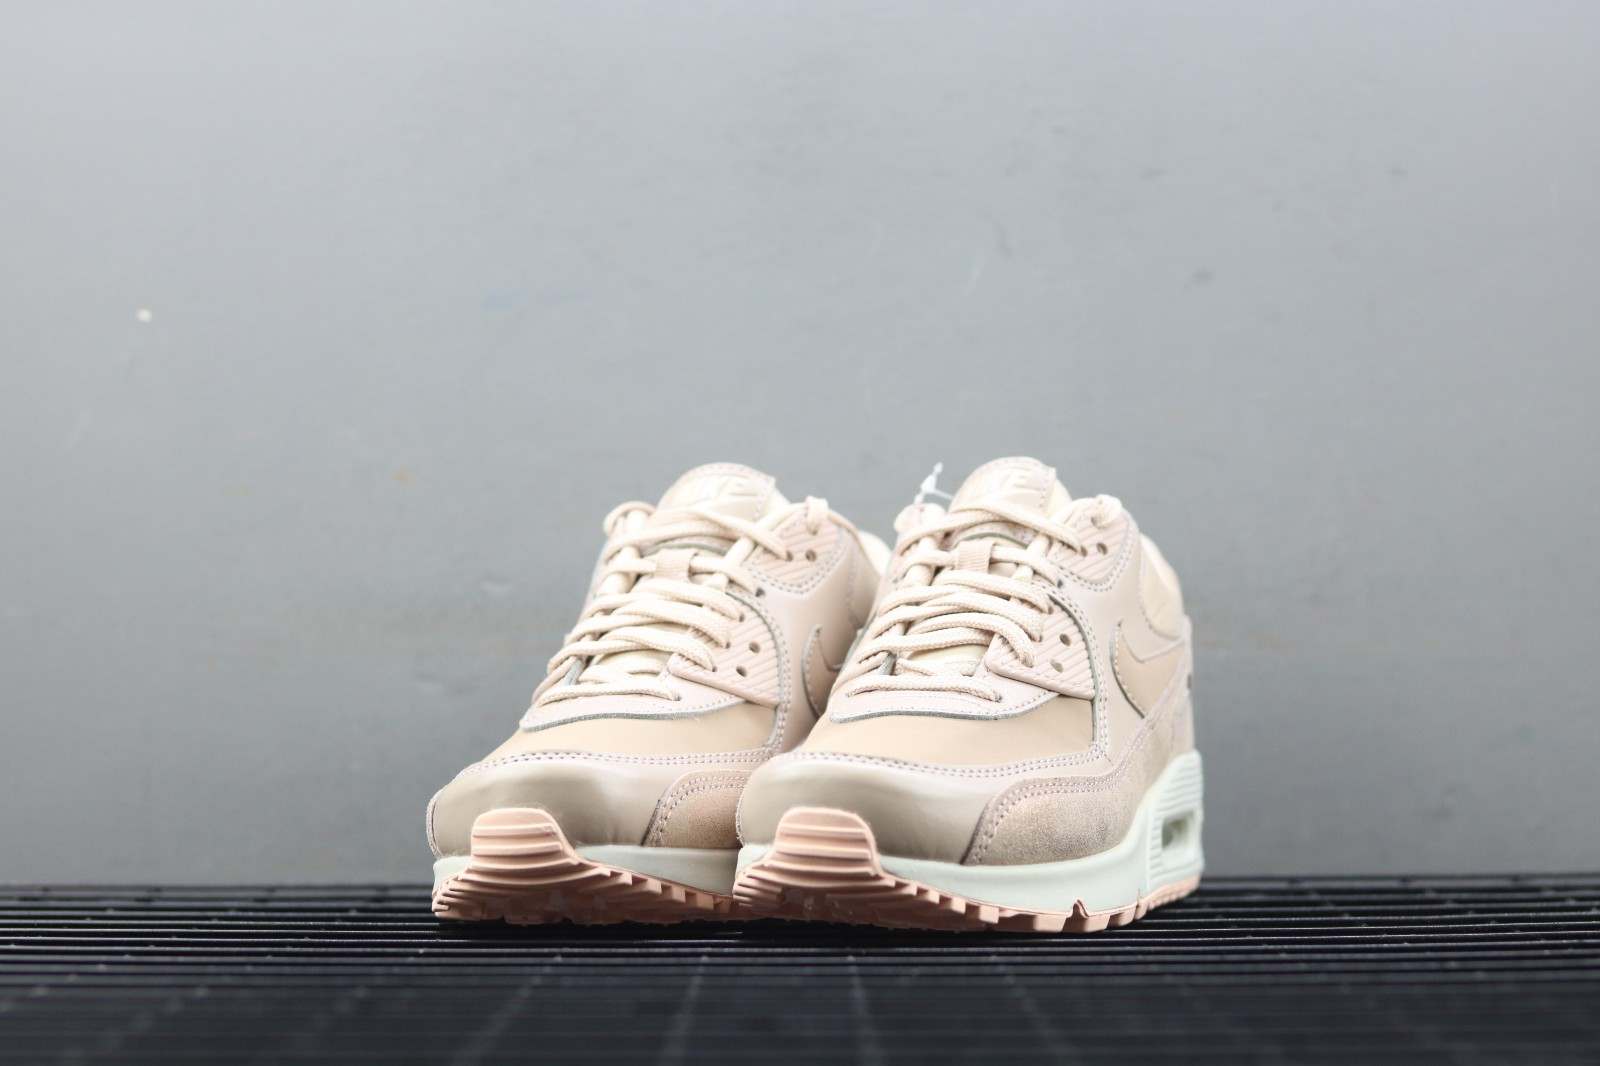 Nike WMNS Air Max 90 Premium Particle Beige Casual Shoes 896497 201